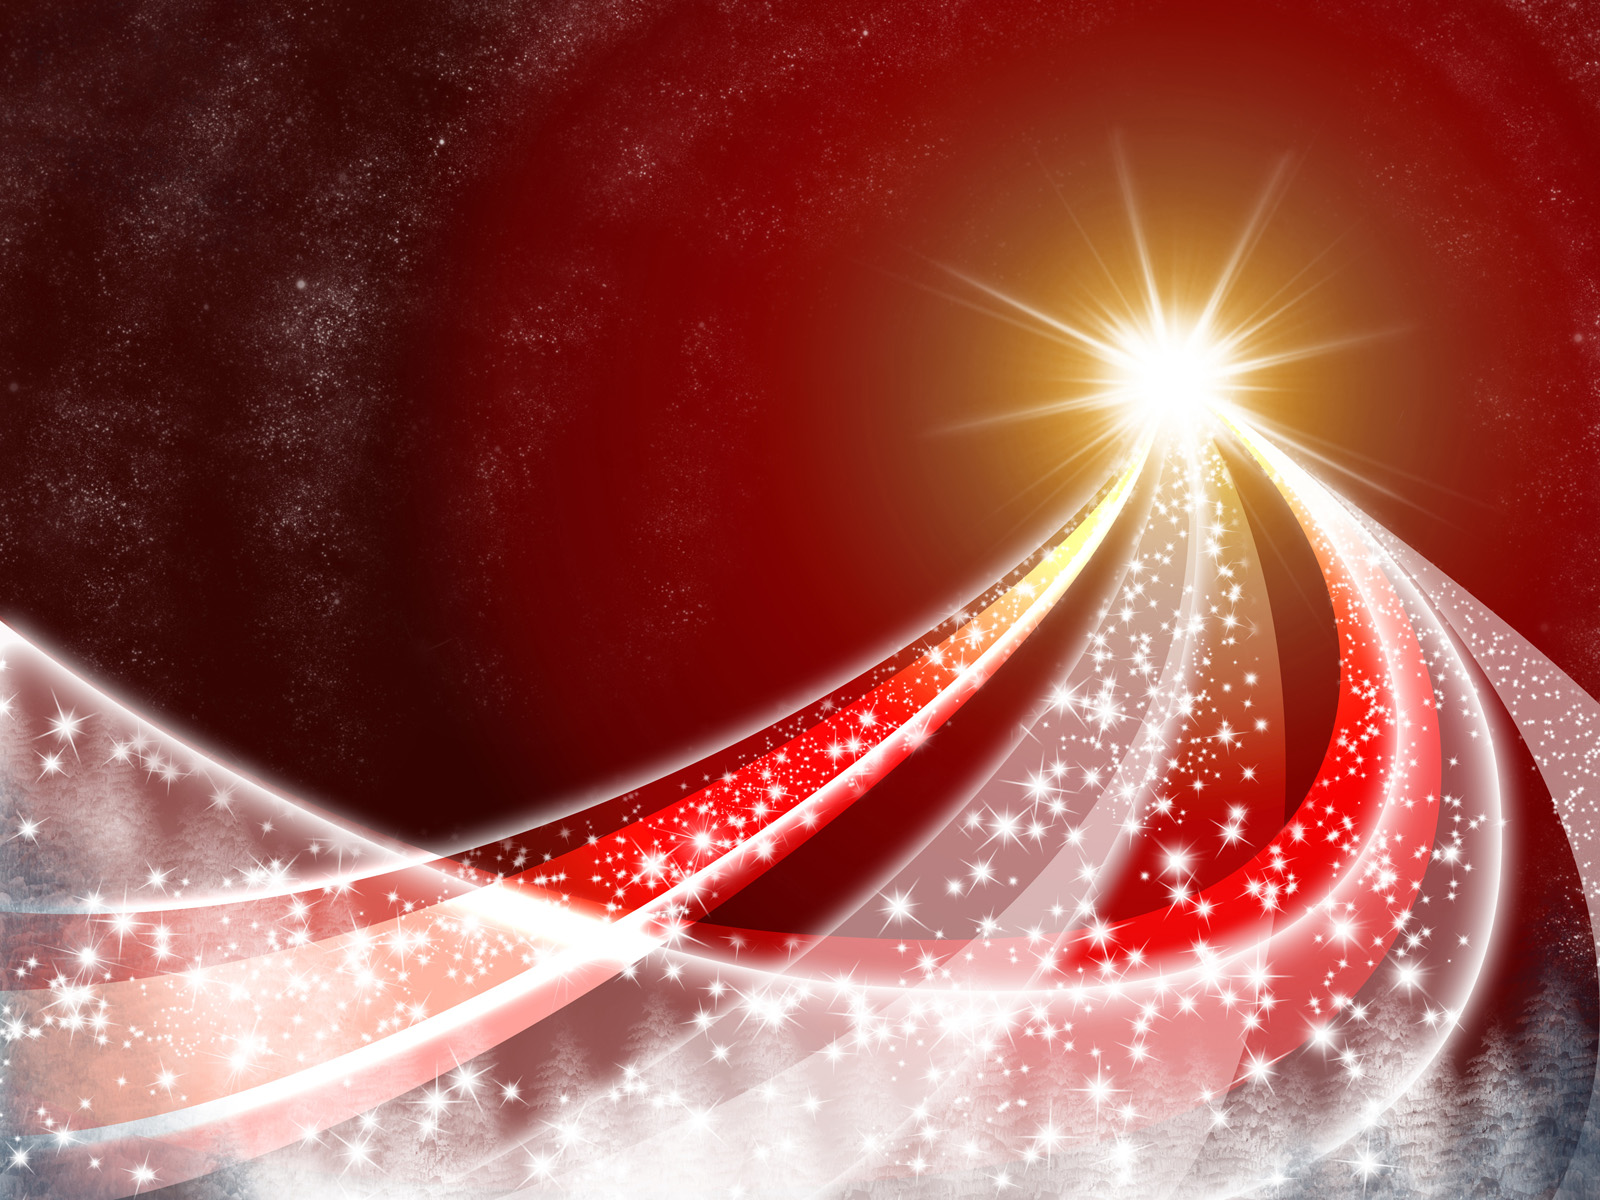 Christmas Abstract Snowy Backgrounds | Abstract, Christmas ...